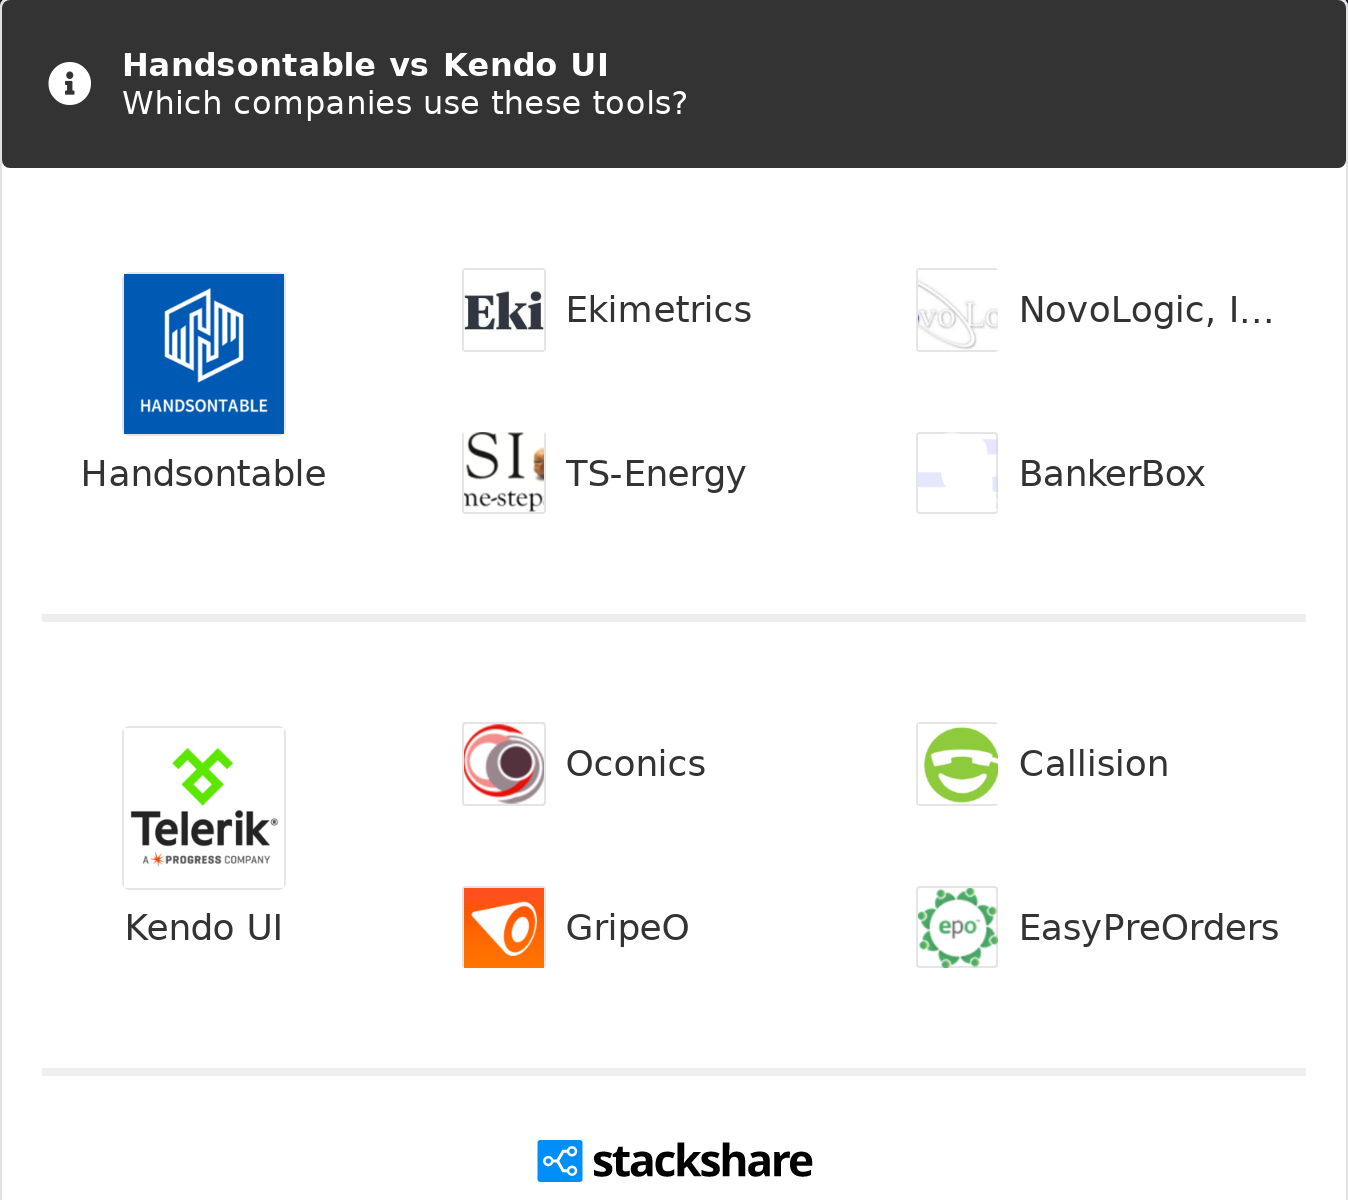 Handsontable vs Kendo UI | What are the differences?